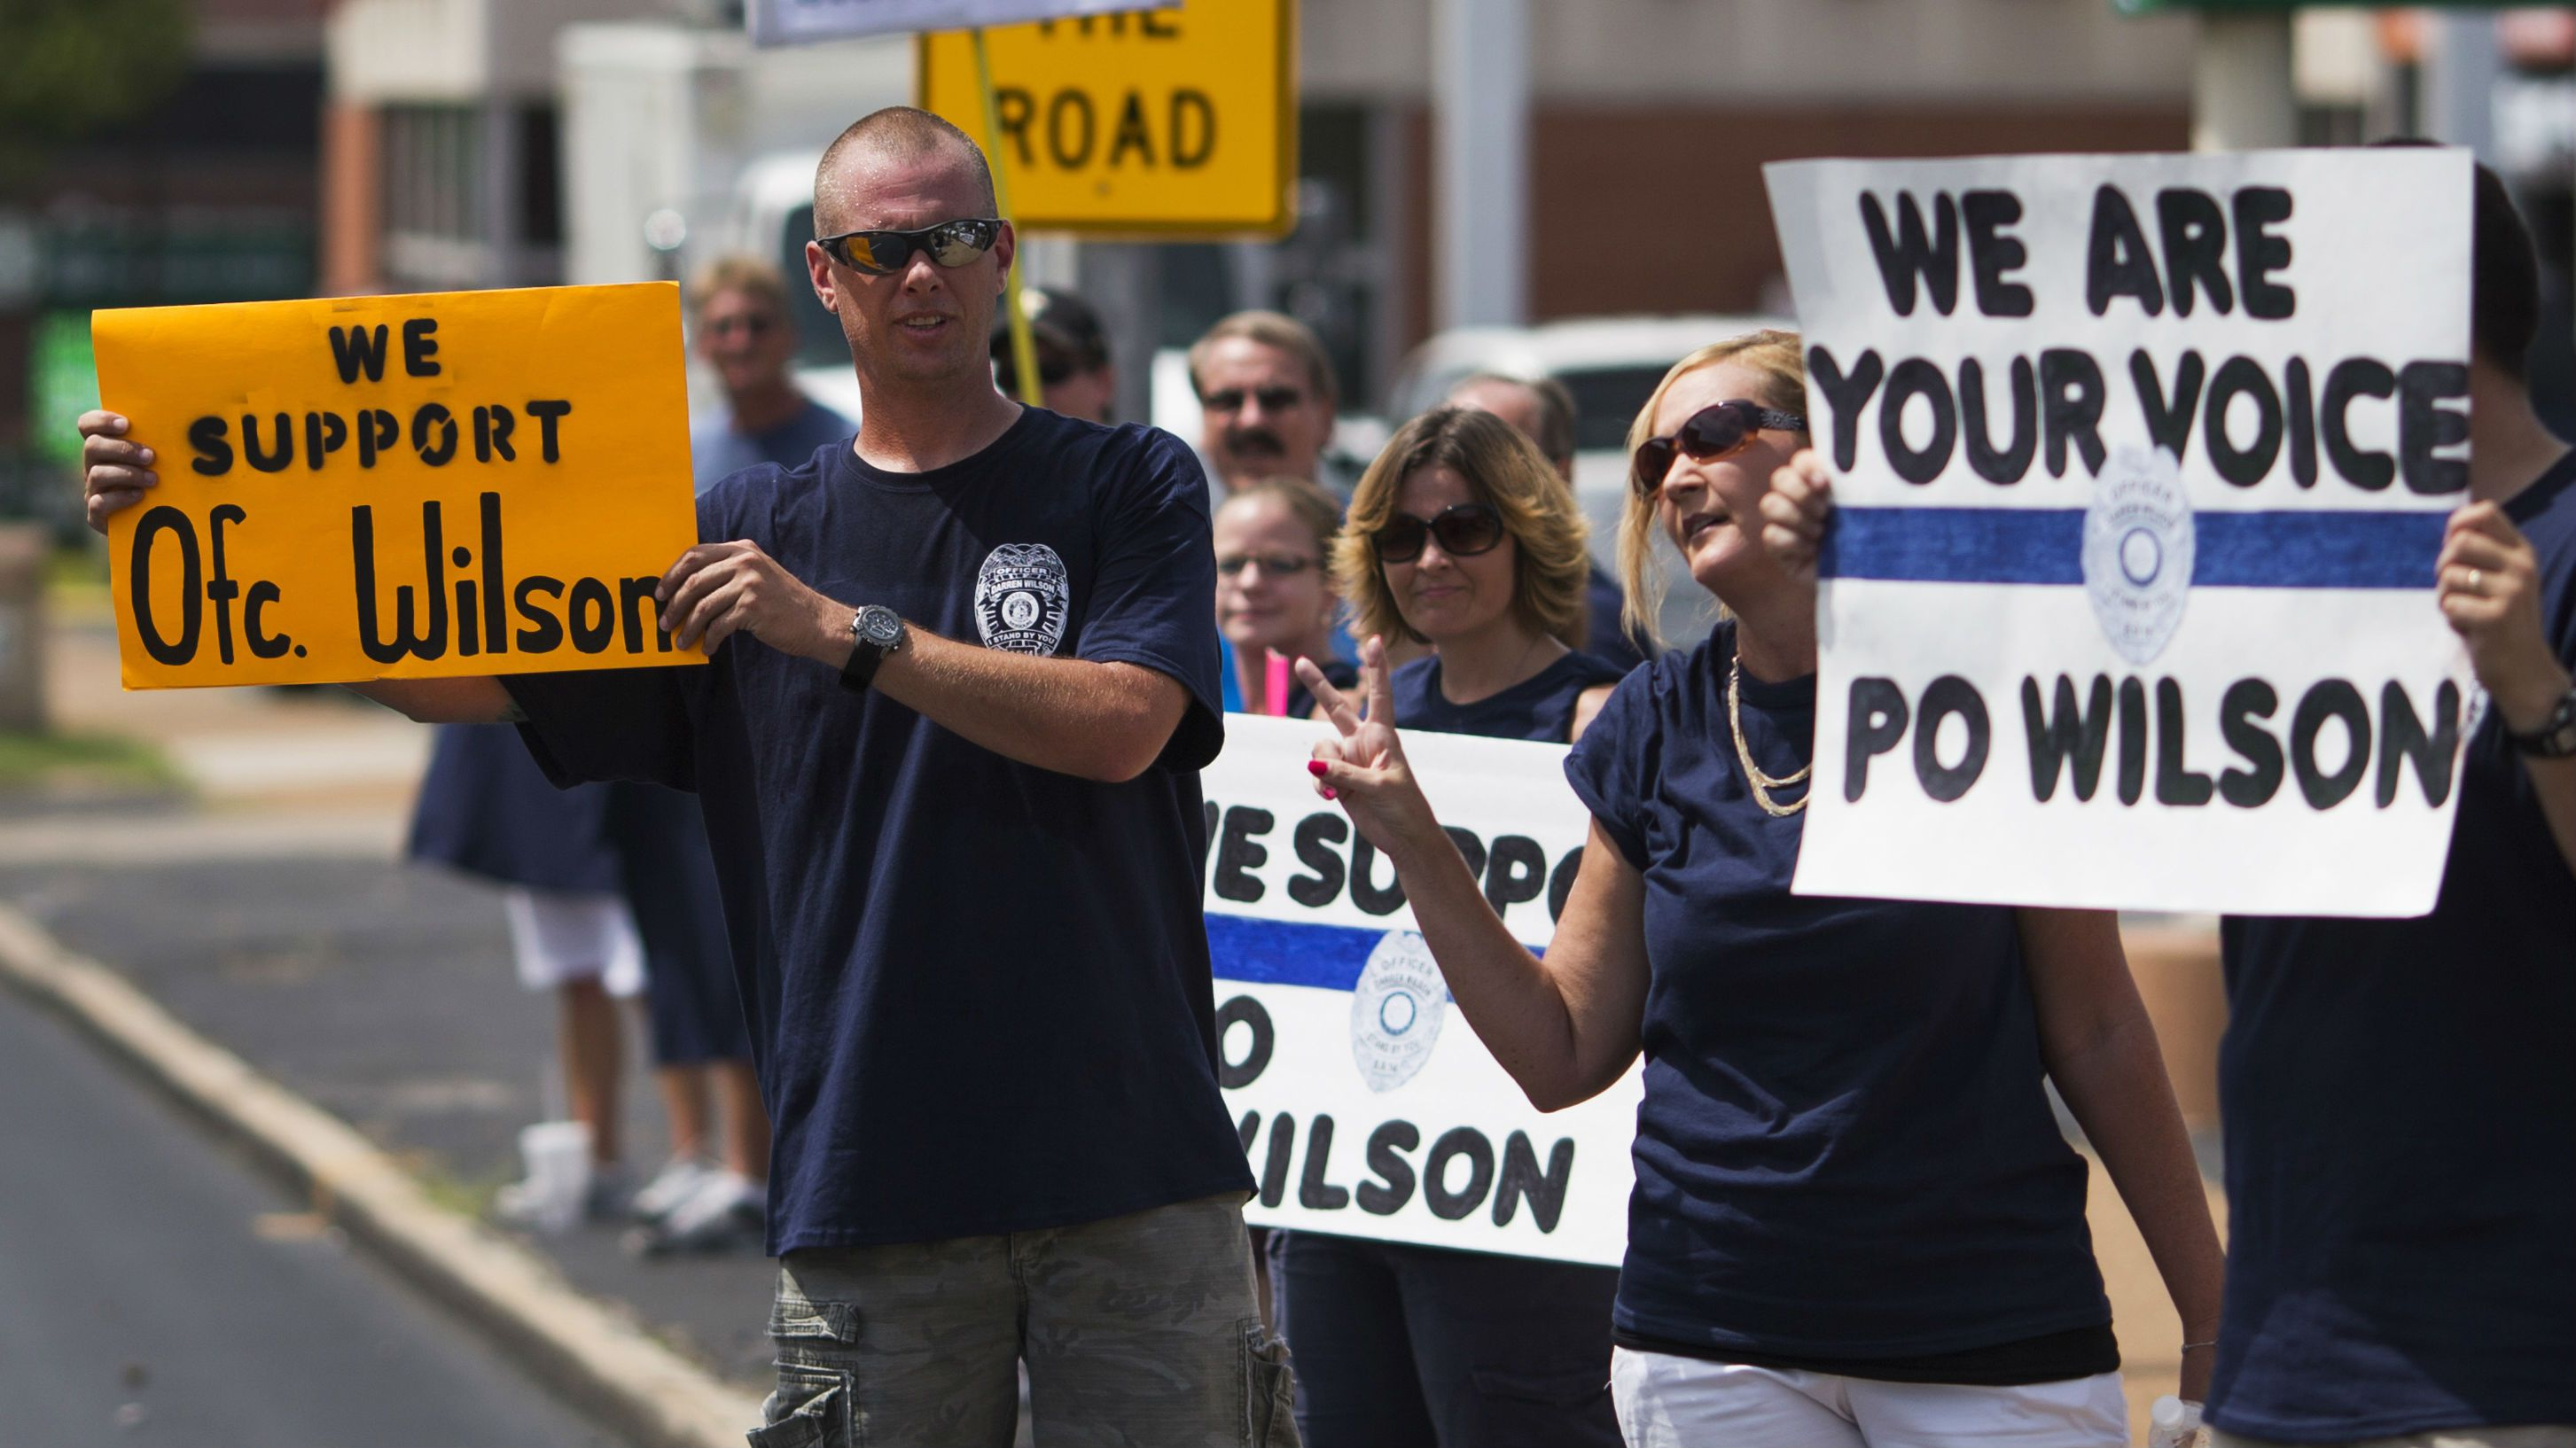 Supporters of officer Darren Wilson hold placards outside Barney's Sports Pub in St. Louis, Missouri August 23, 2014. No arrests were recorded overnight, marking three consecutive relatively calm nights for the St. Louis suburb following daily unrest since Michael Brown, 18, was shot by Ferguson officer Darren Wilson on Aug. 9. About 14 miles (22 km) away in St. Louis, dozens of supporters of the officer gathered at Barney's Sports Pub to raise money for Wilson's family. REUTERS/Adrees Latif (UNITED STATES - Tags: CRIME LAW CIVIL UNREST)